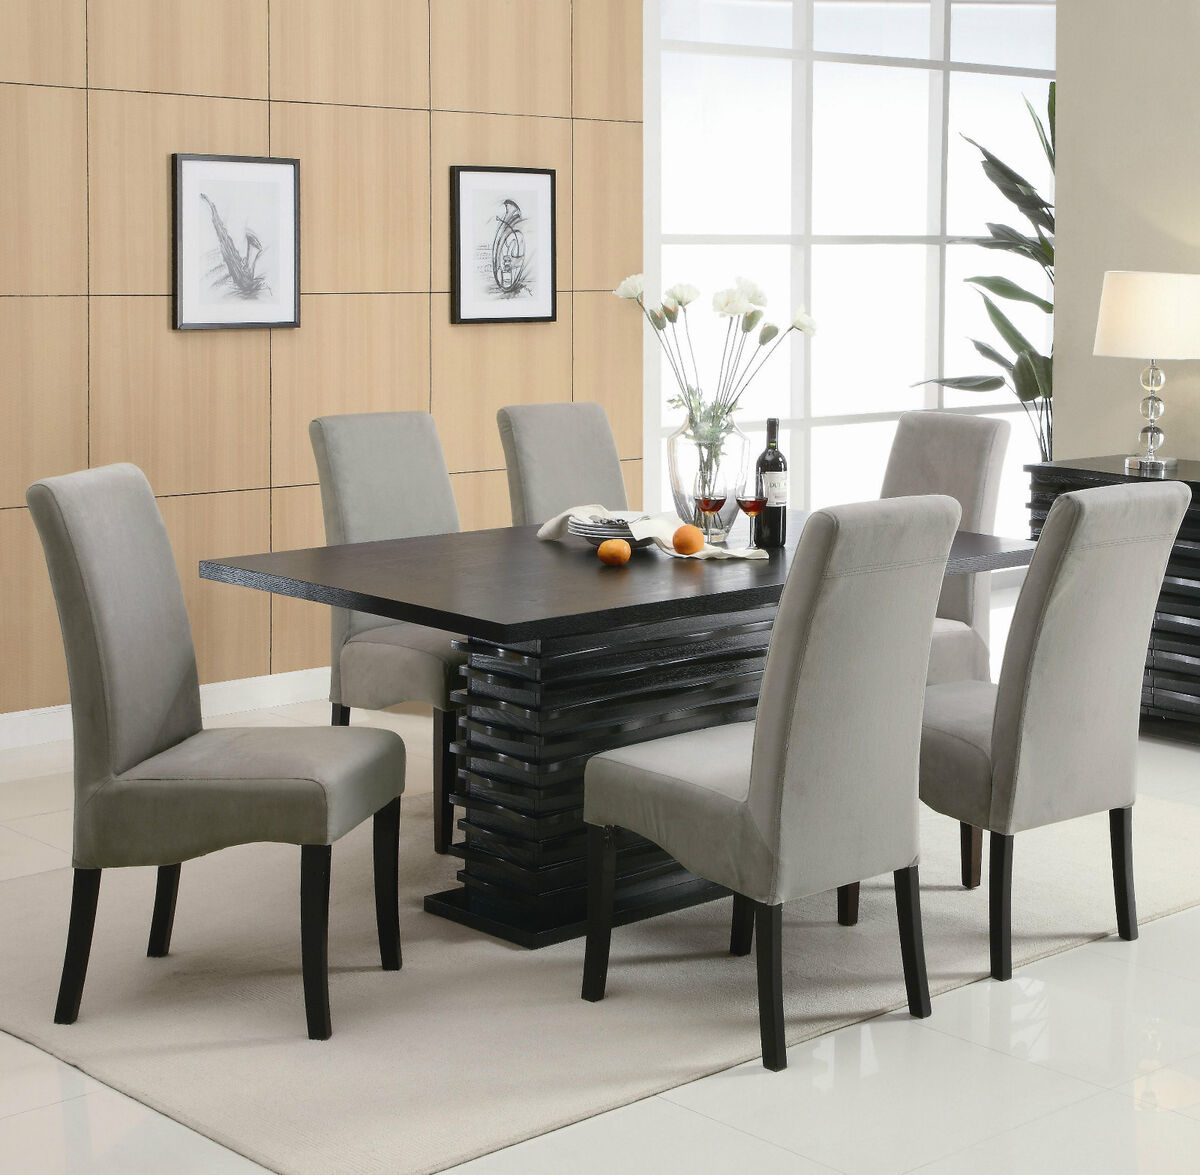 Stunning Black Dining Room Table and Chairs Set 1200 x 1175 · 161 kB · jpeg